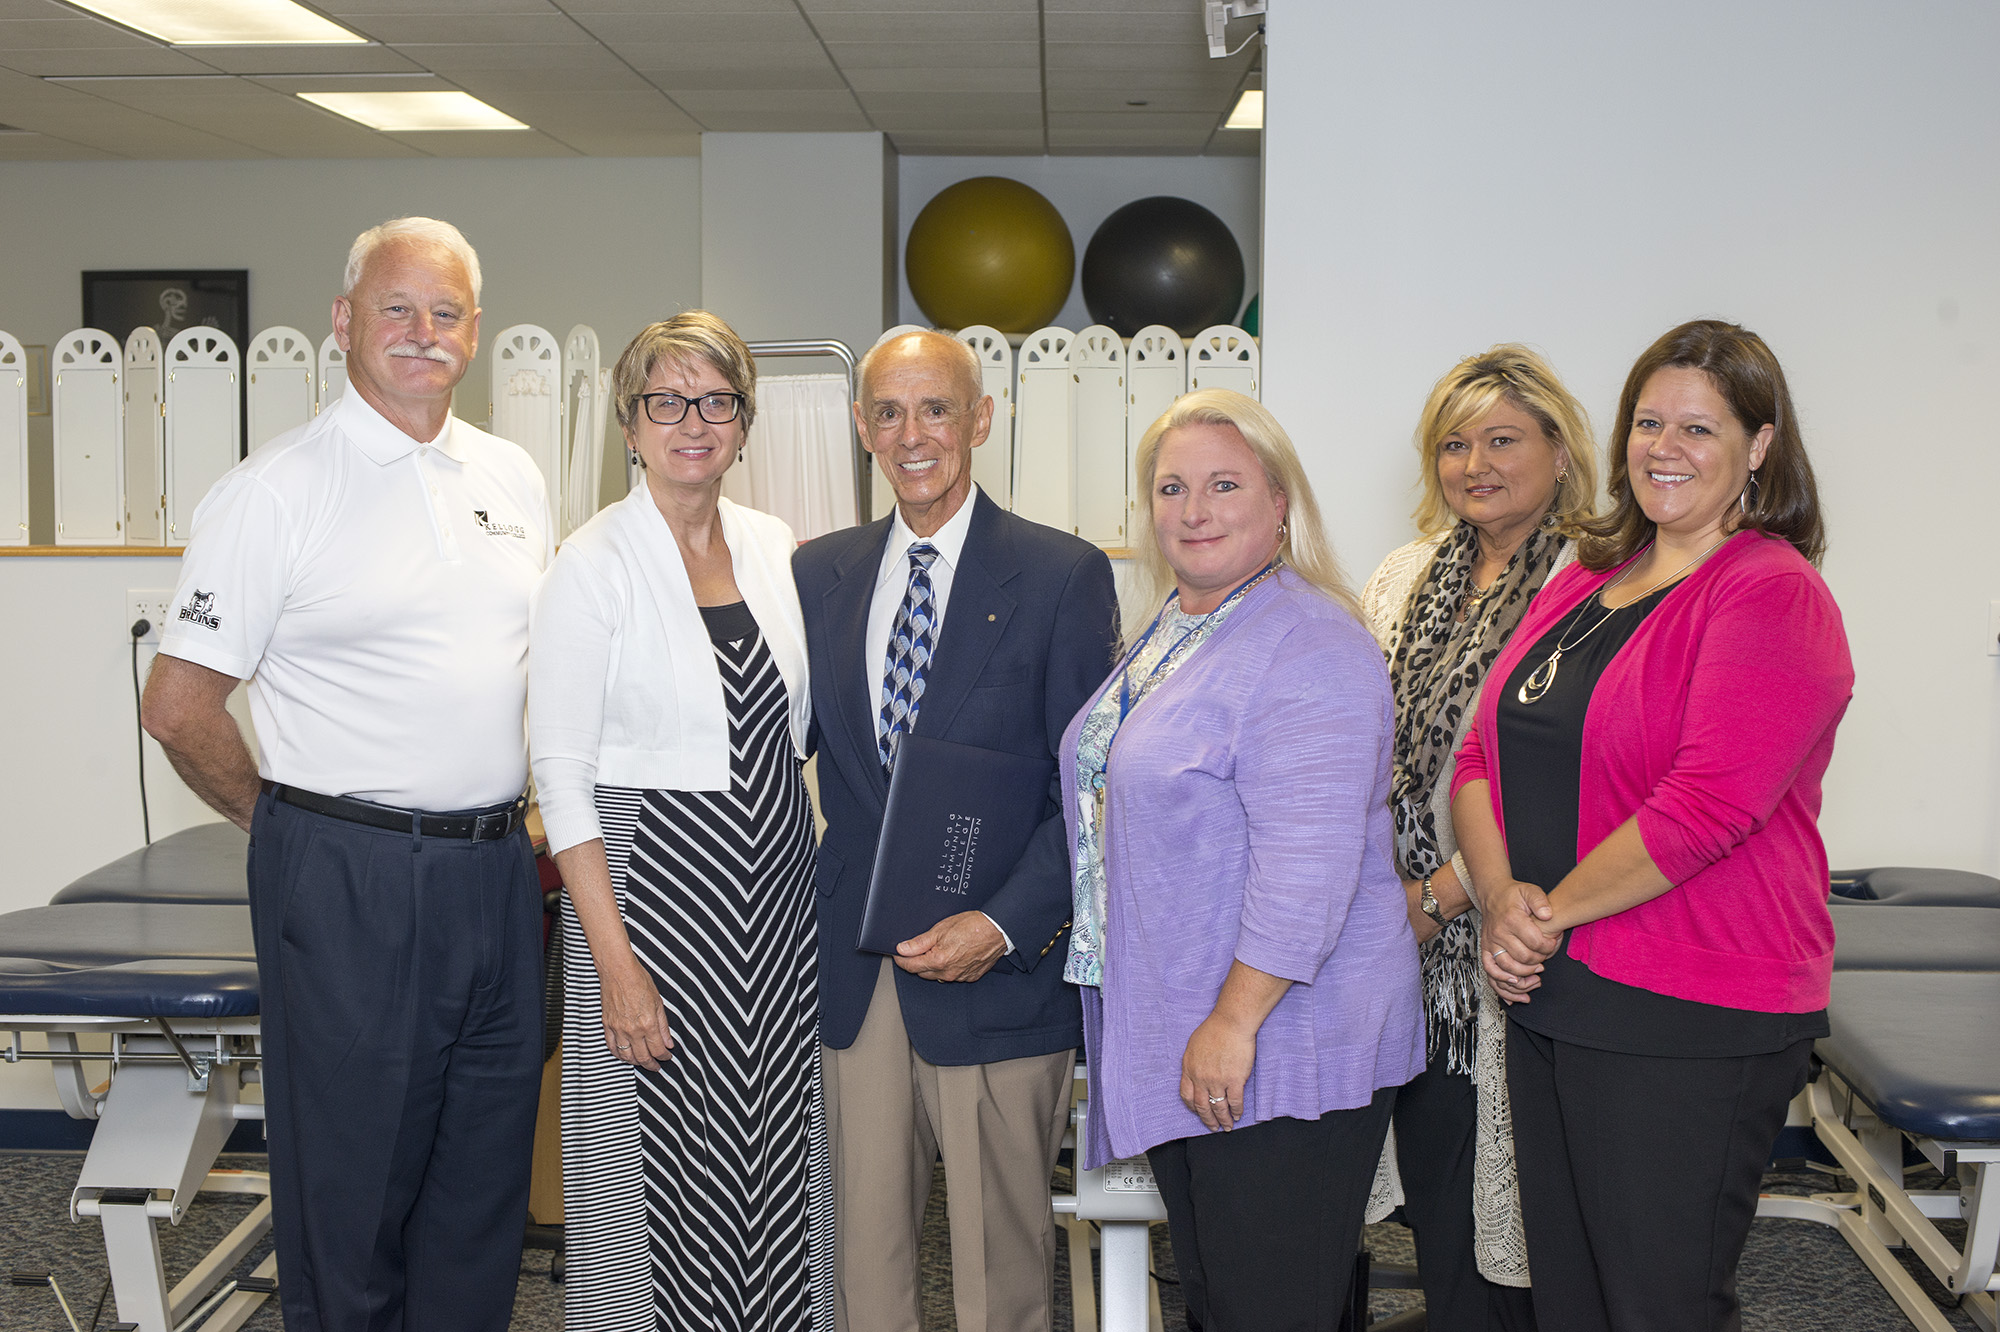 Pictured, from left to right, are KCC President Mark O'Connell, KCC Foundation Executive Director Teresa Durham, SWMRF President Roger Mattens, KCC PTA Coordinator and professor Julie Dawes, KCC Dean of Workforce Development Dr. Jan Karazim and PTA professor Tracy Wood.